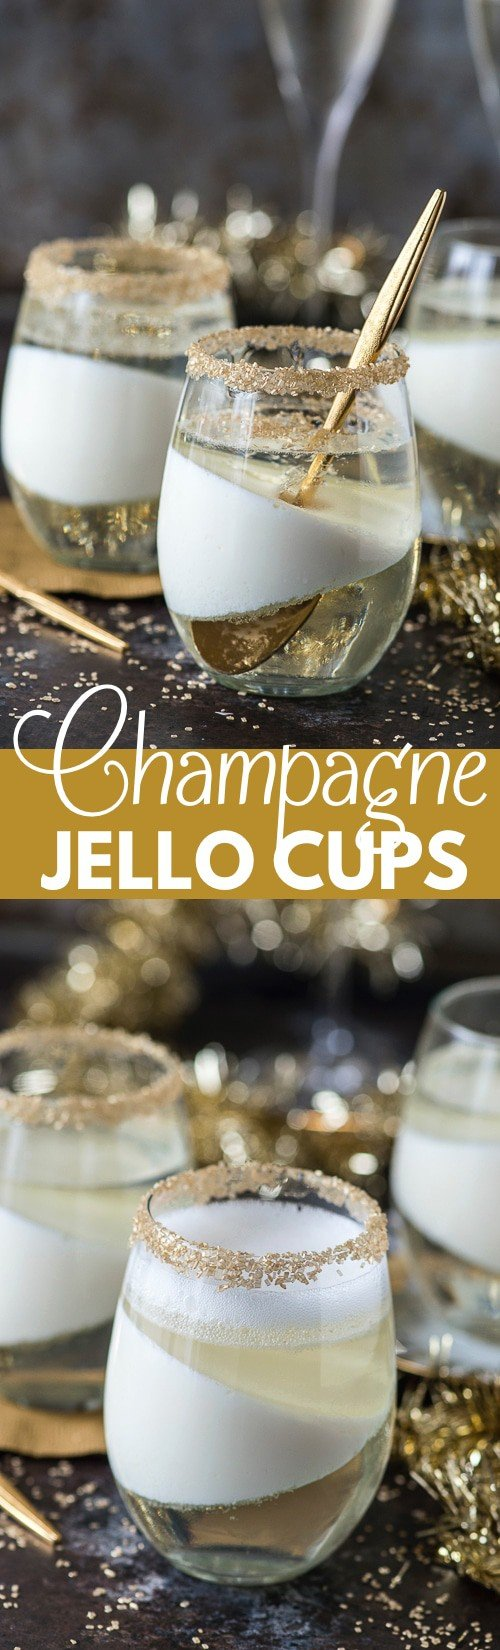 Easy champagne jello recipe that would be a perfect dessert for New Year's Eve!